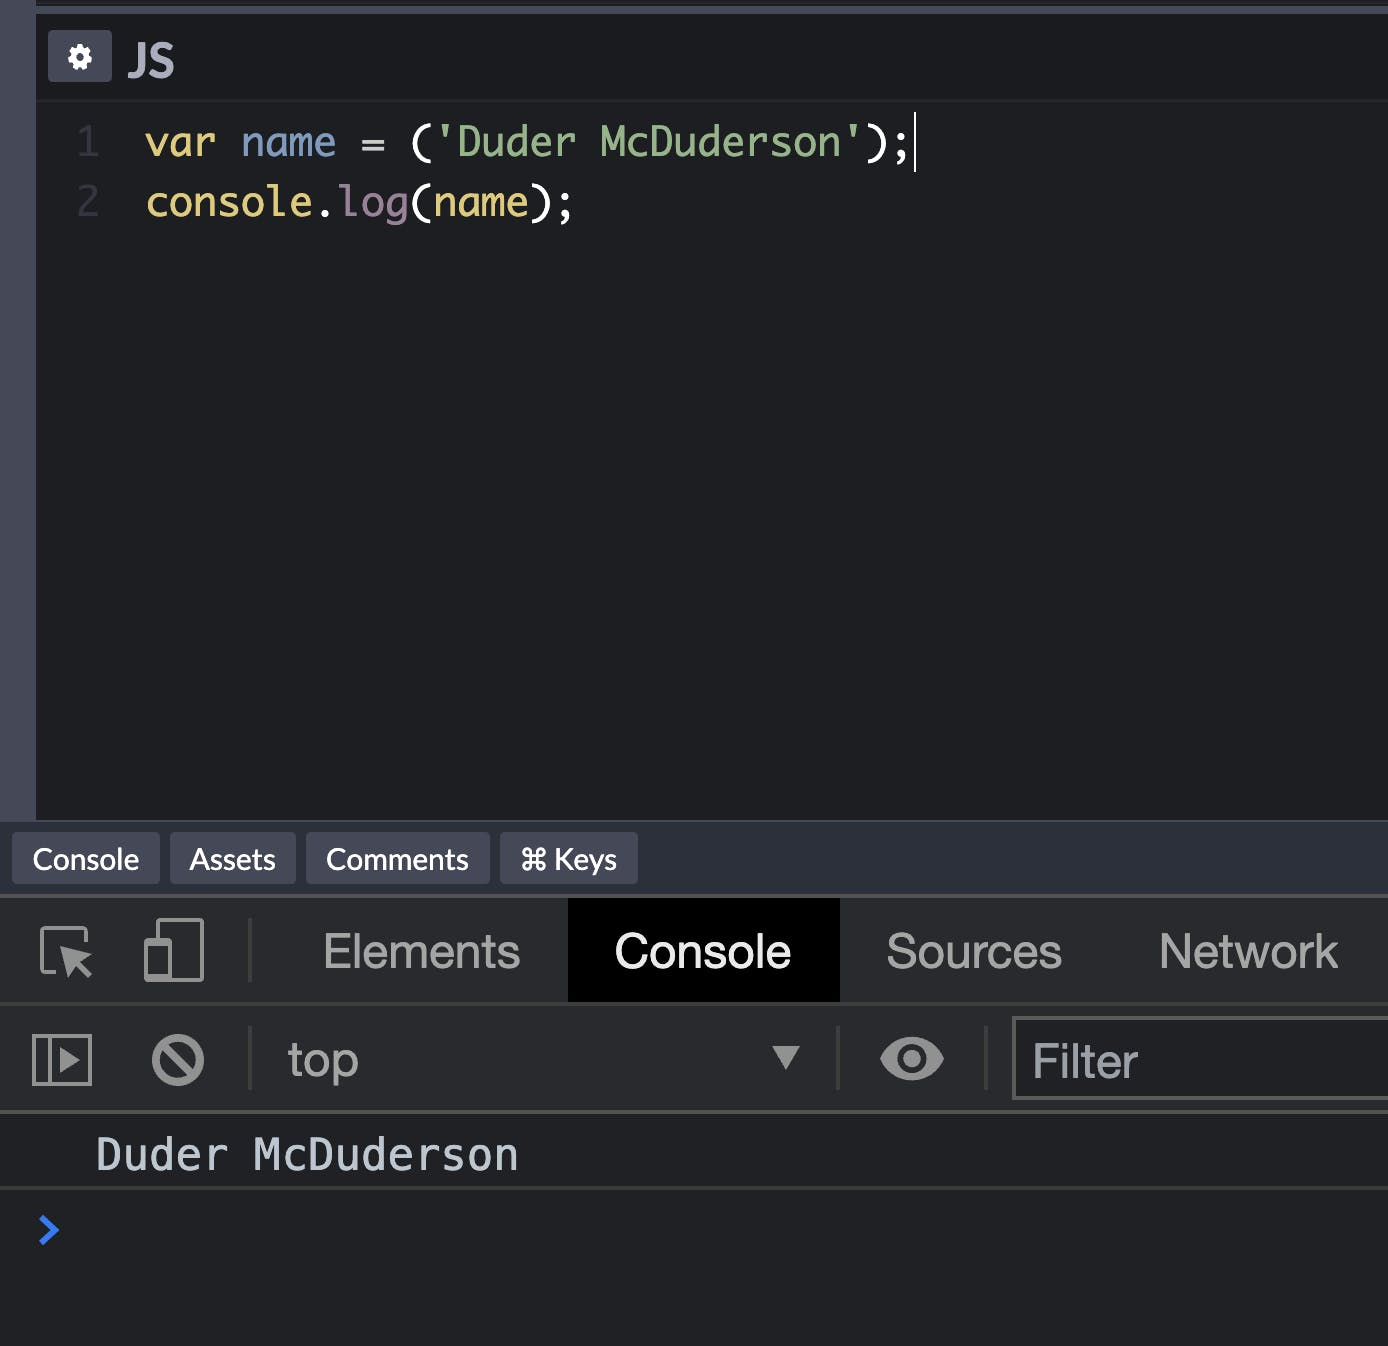 Demonstrating console.log() in Javascript